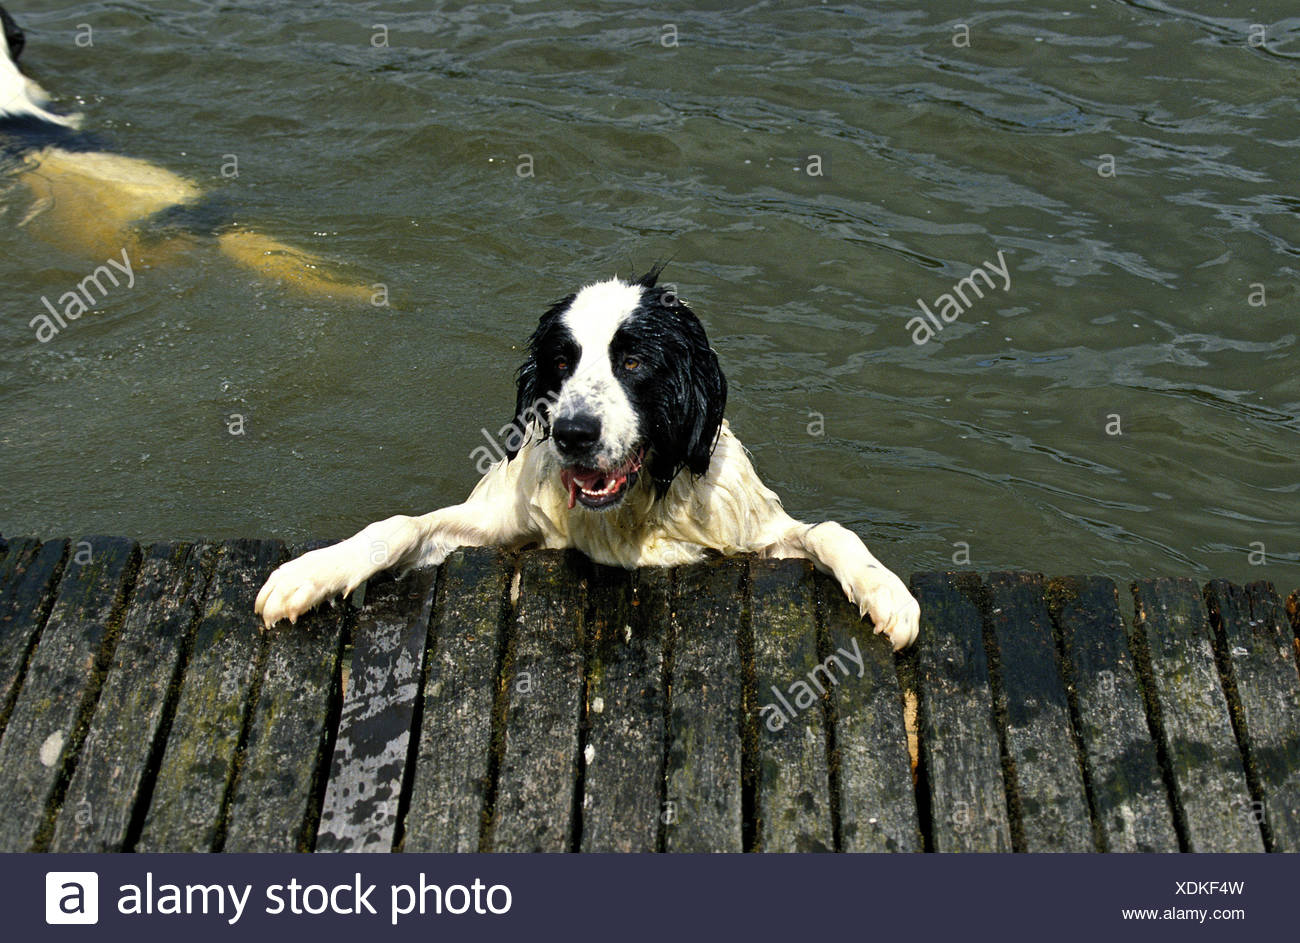 Landseer Hund,water,bridge, - Stock Image